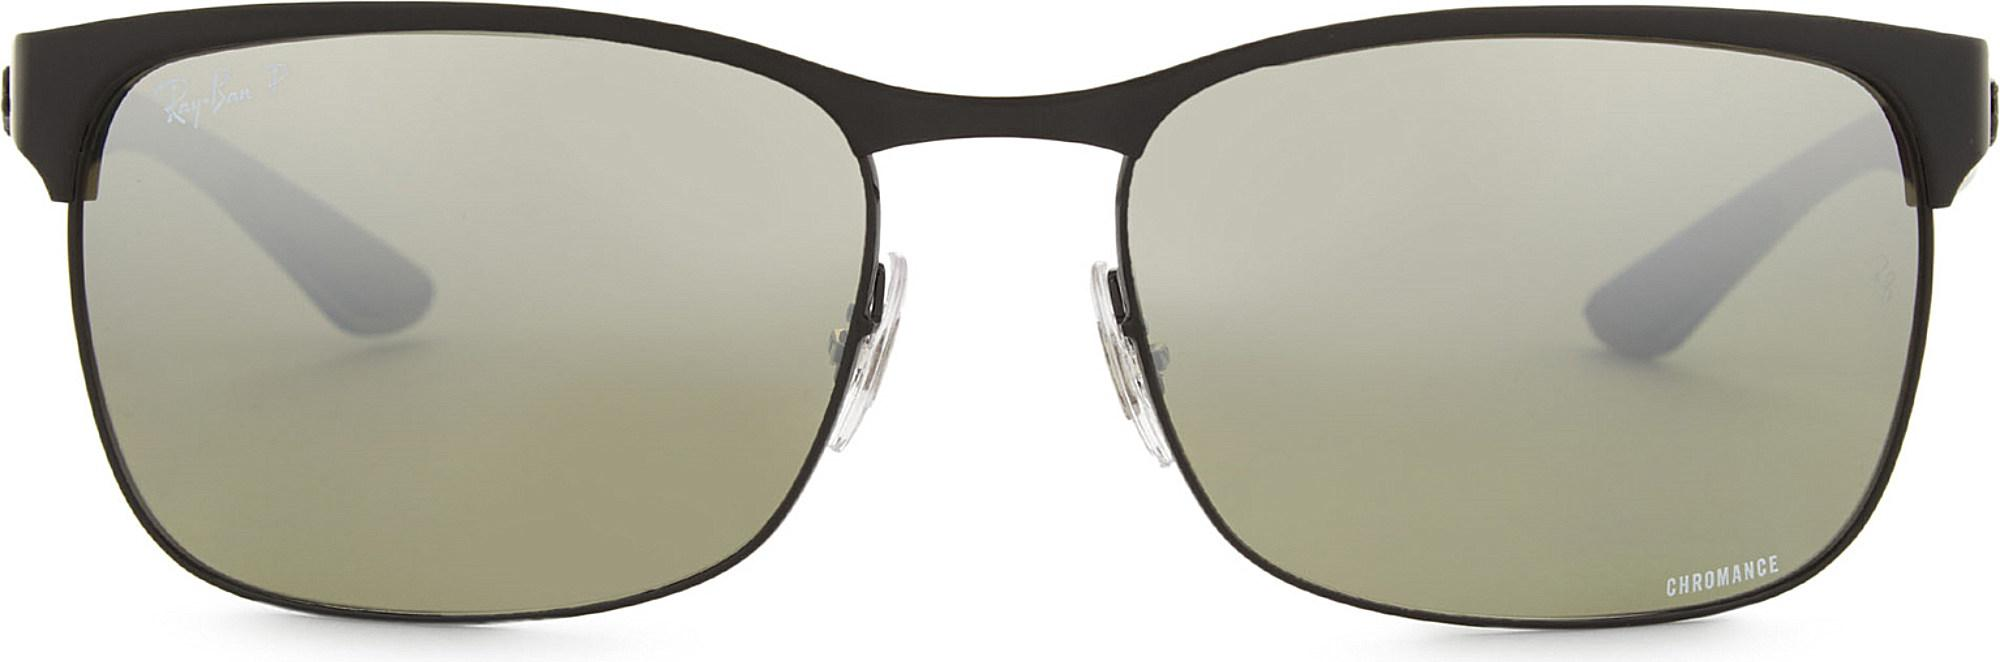 89b28d1e37 Ray-Ban Rb8319 Rectangle-frame Sunglasses in Black - Lyst